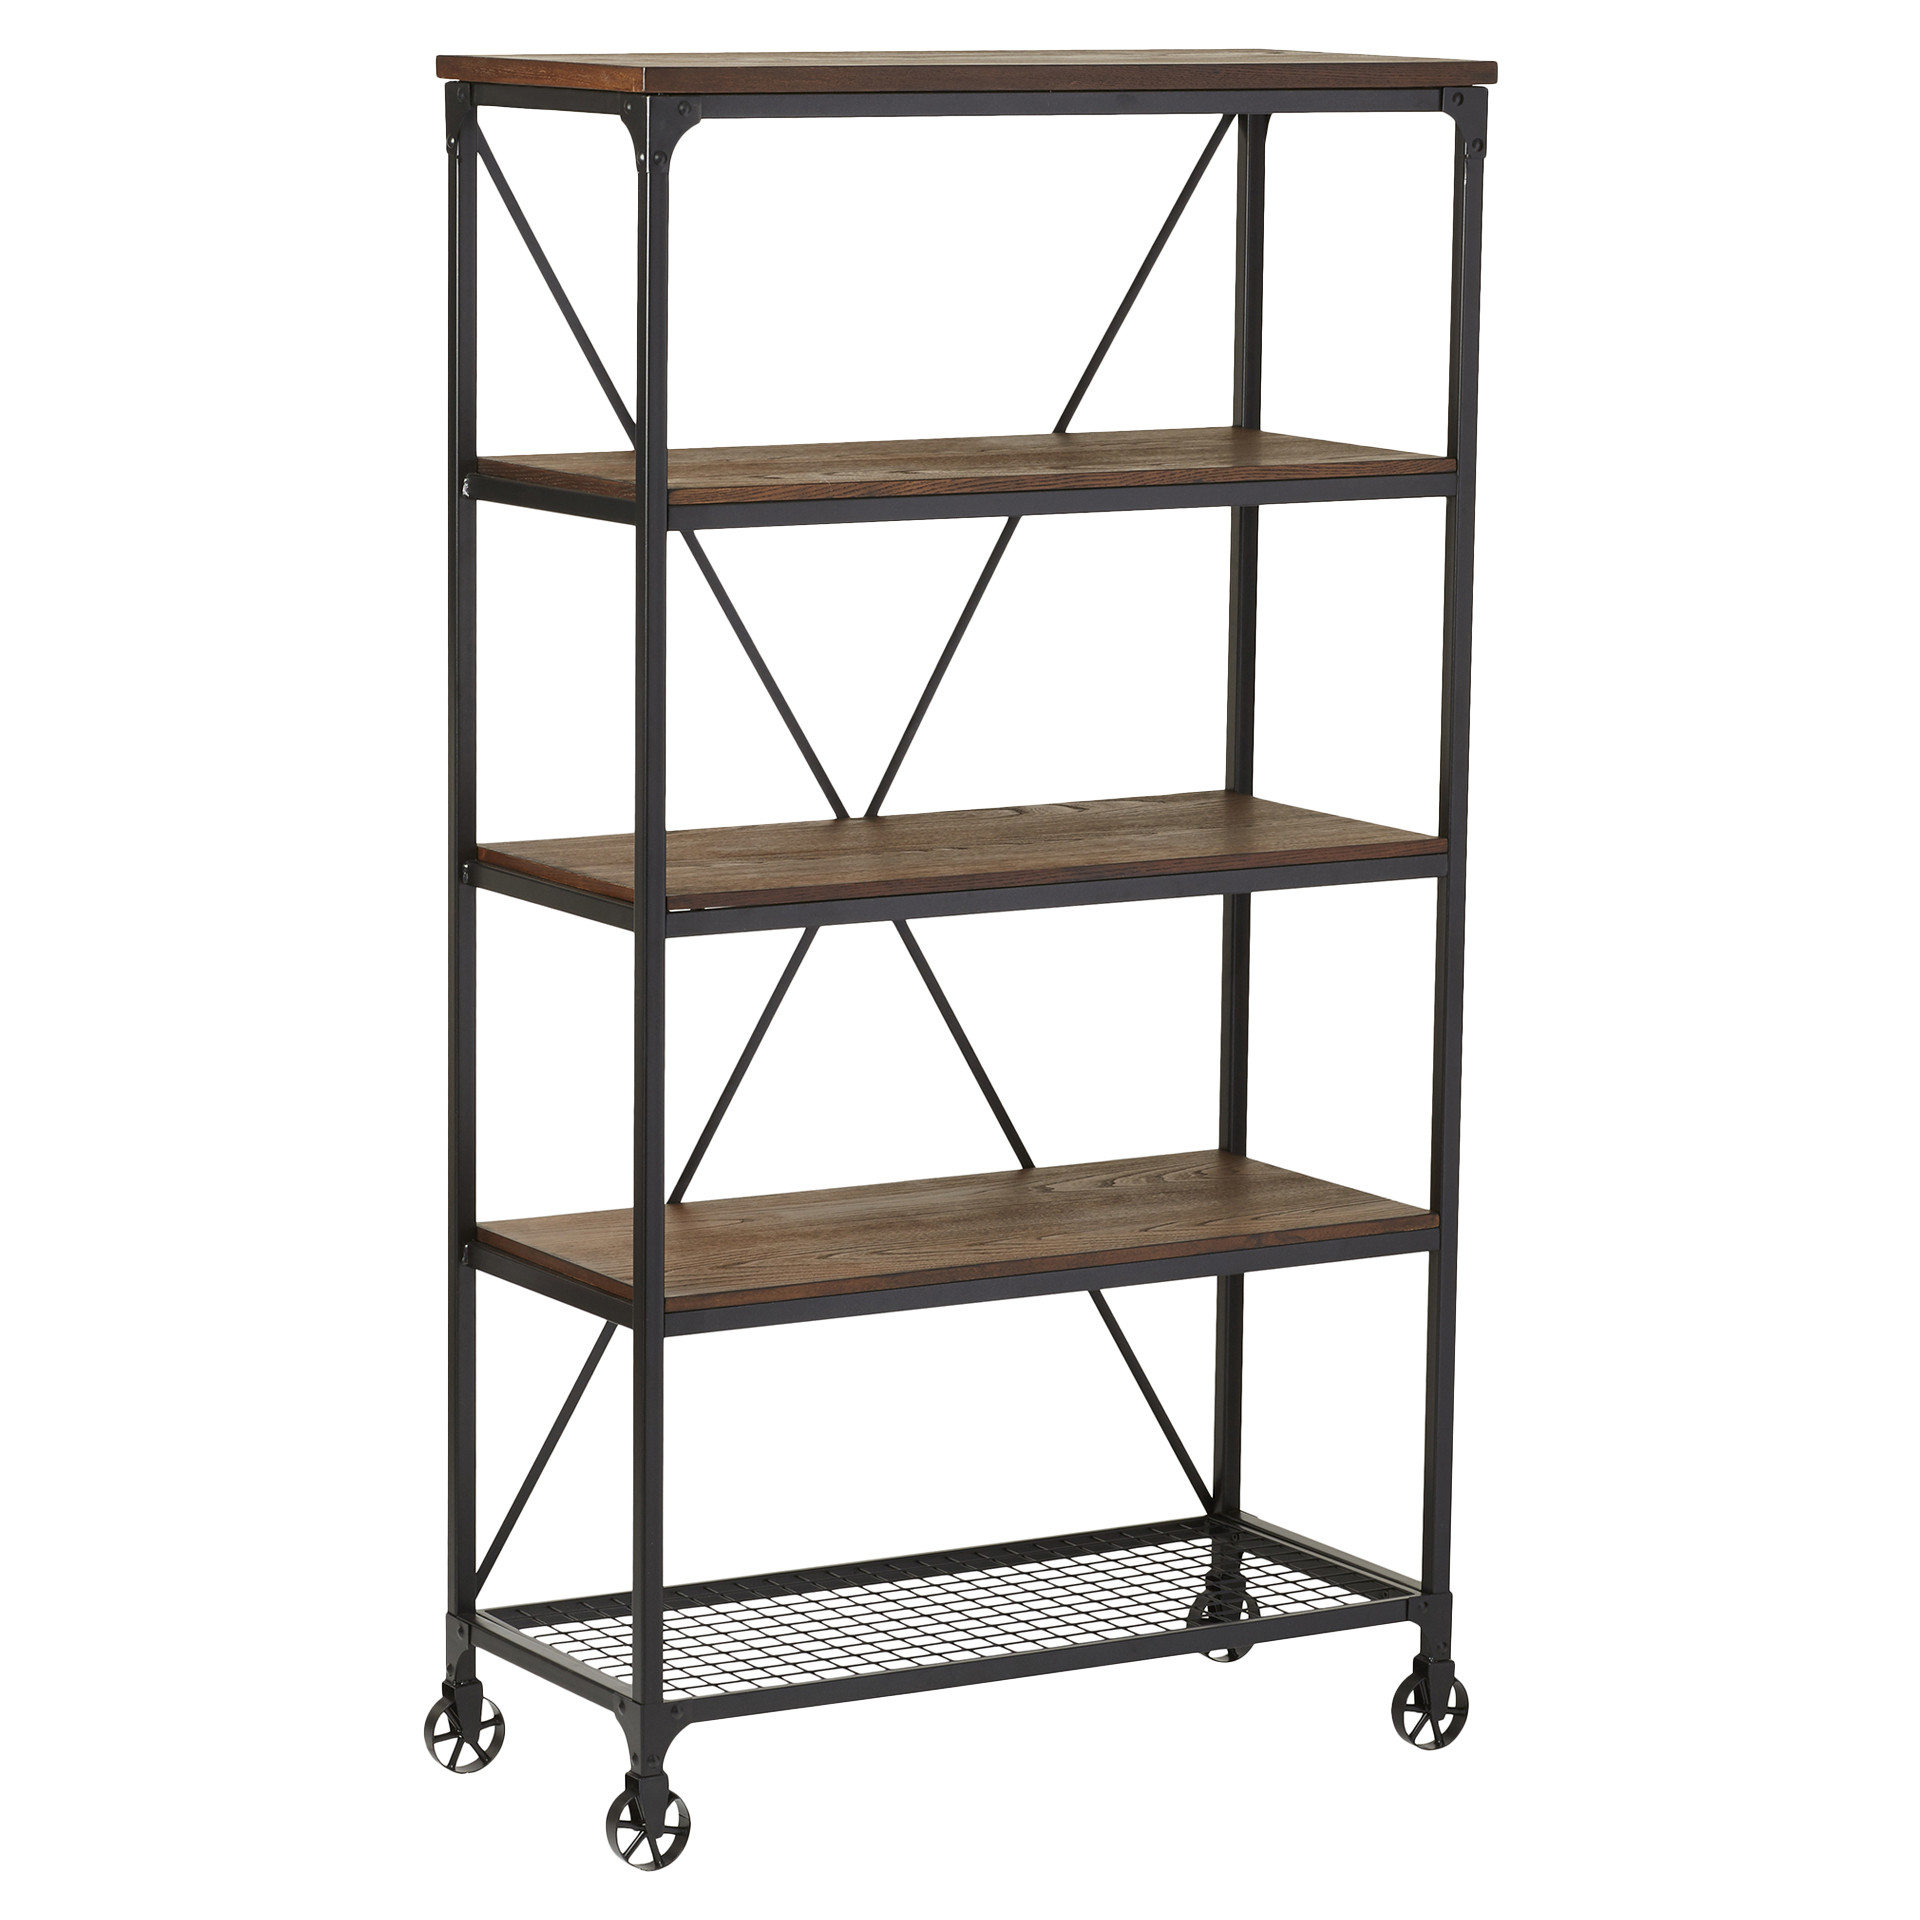 Most Popular Details About Williston Forge Cable Etagere Bookcase Inside Woodcrest Etagere Bookcases (View 8 of 20)